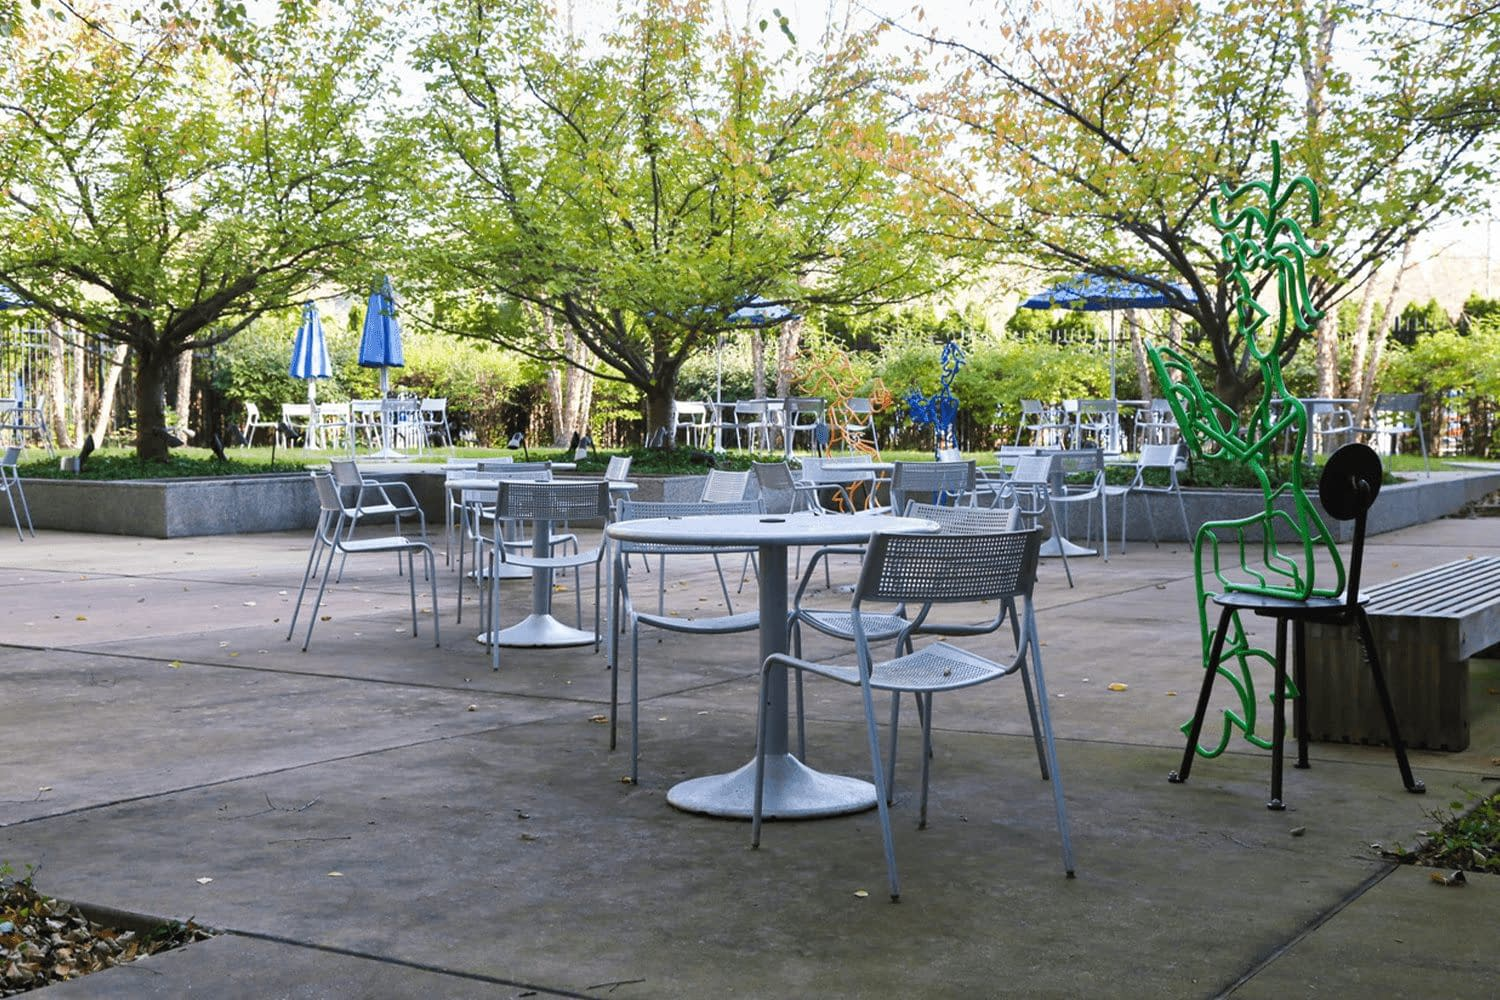 Outdoor patio with tables and chairs shaded by trees